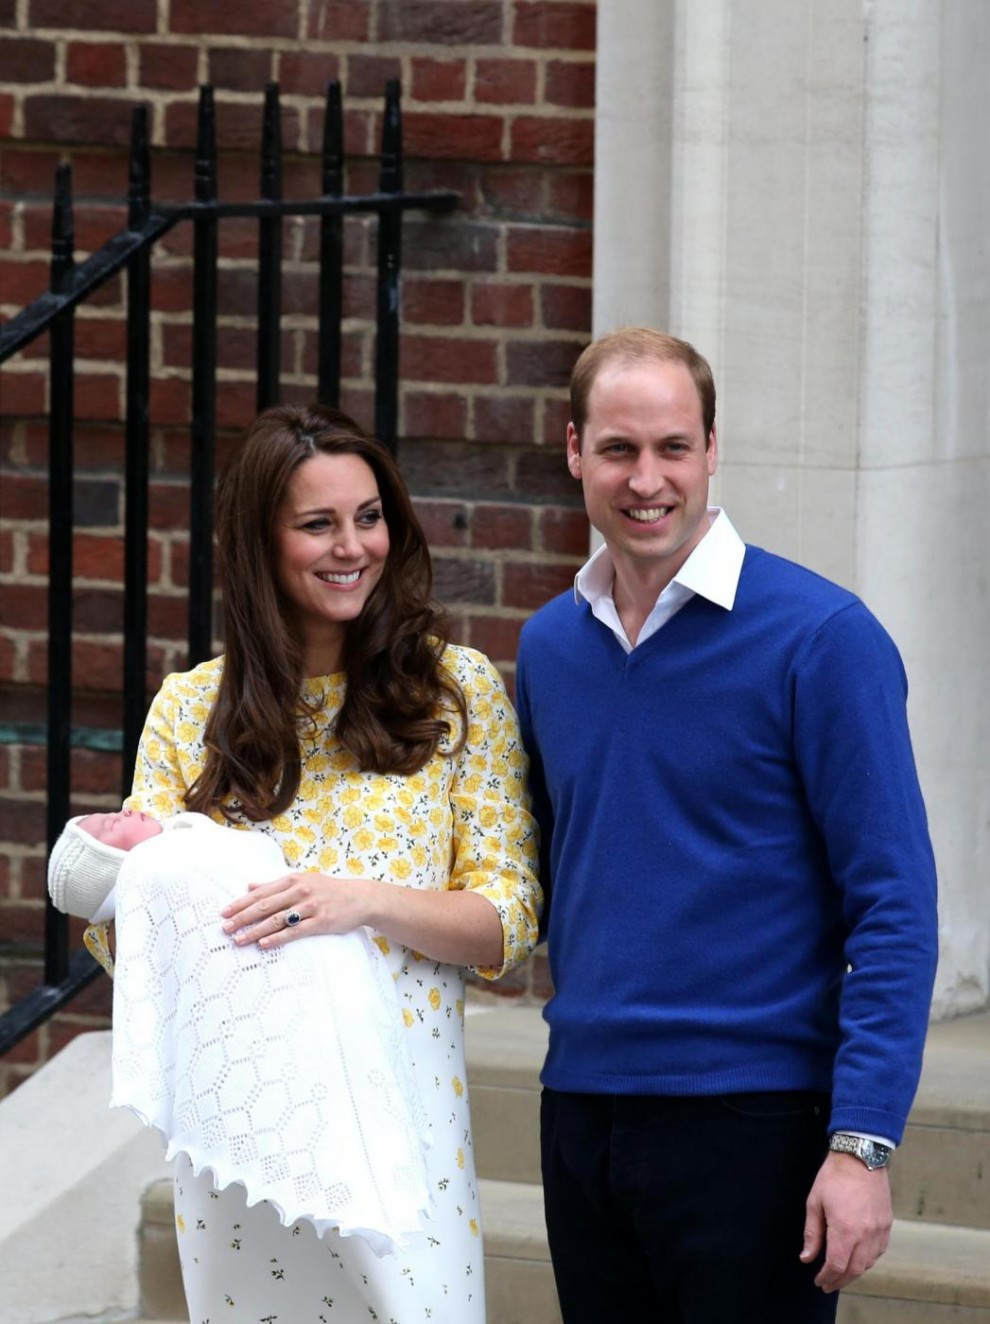 Londra, William e Kate escono dall'ospedale con la royal girl